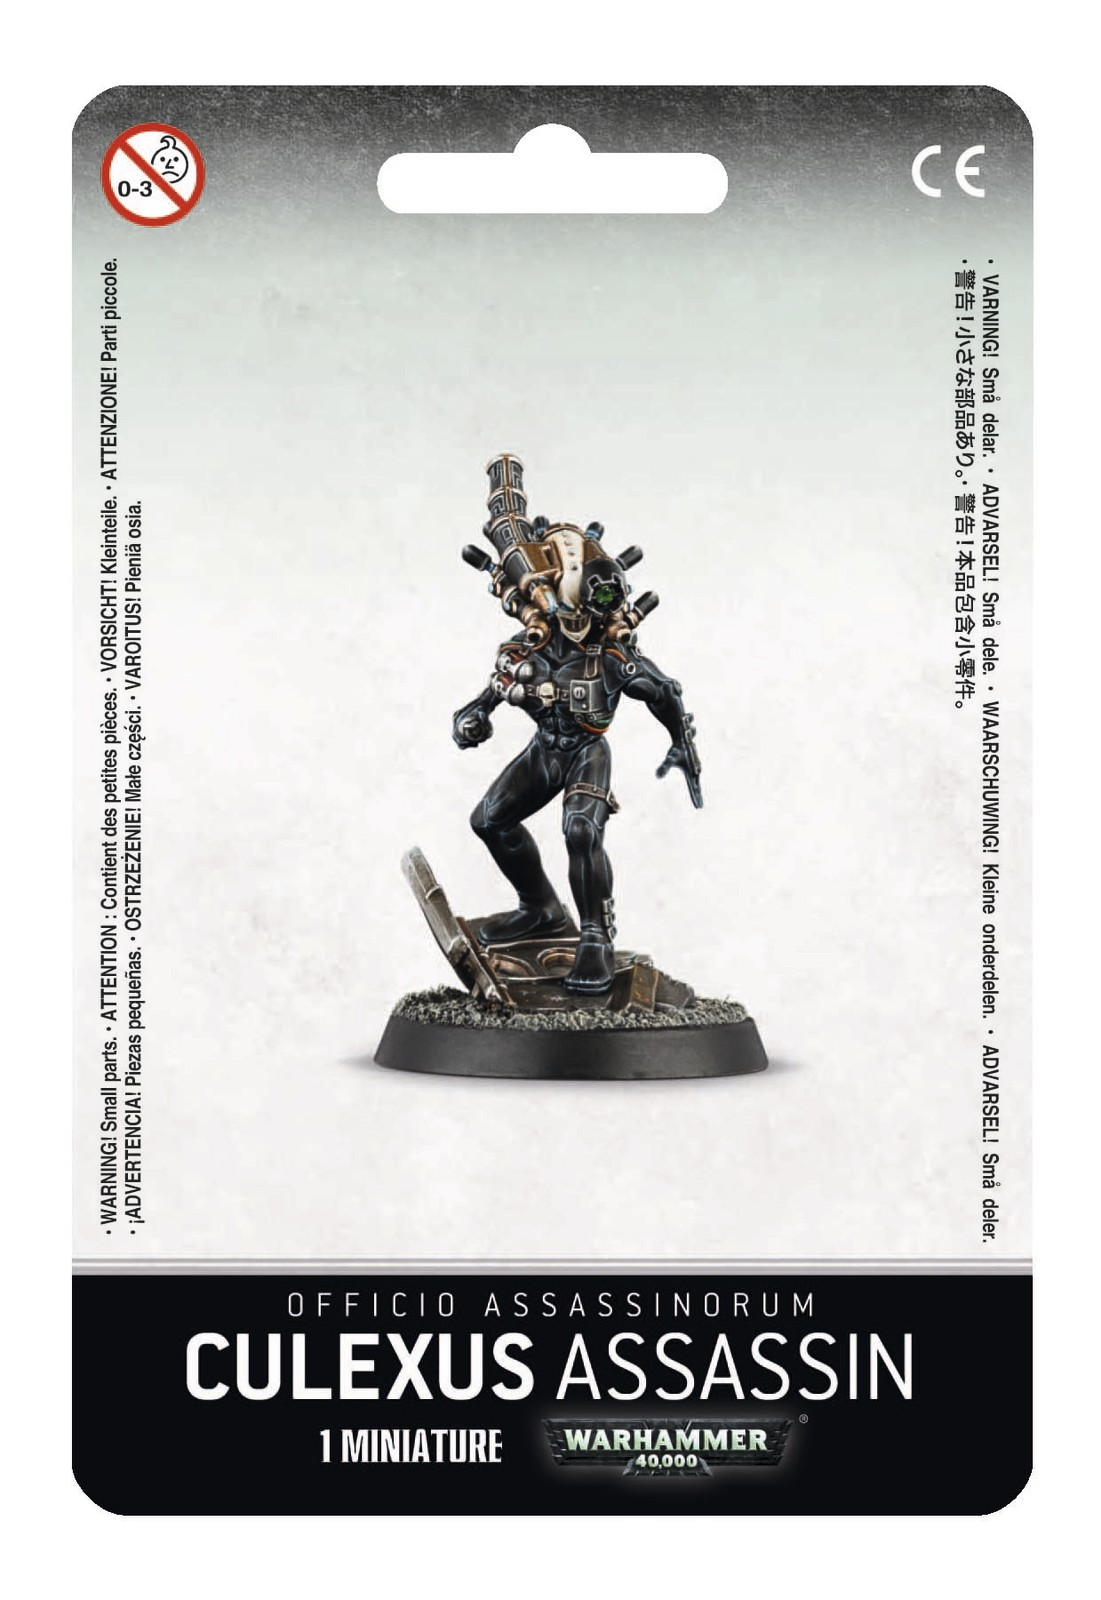 Warhammer 40,000 Officio Assassinorum: Culexus Assassin image